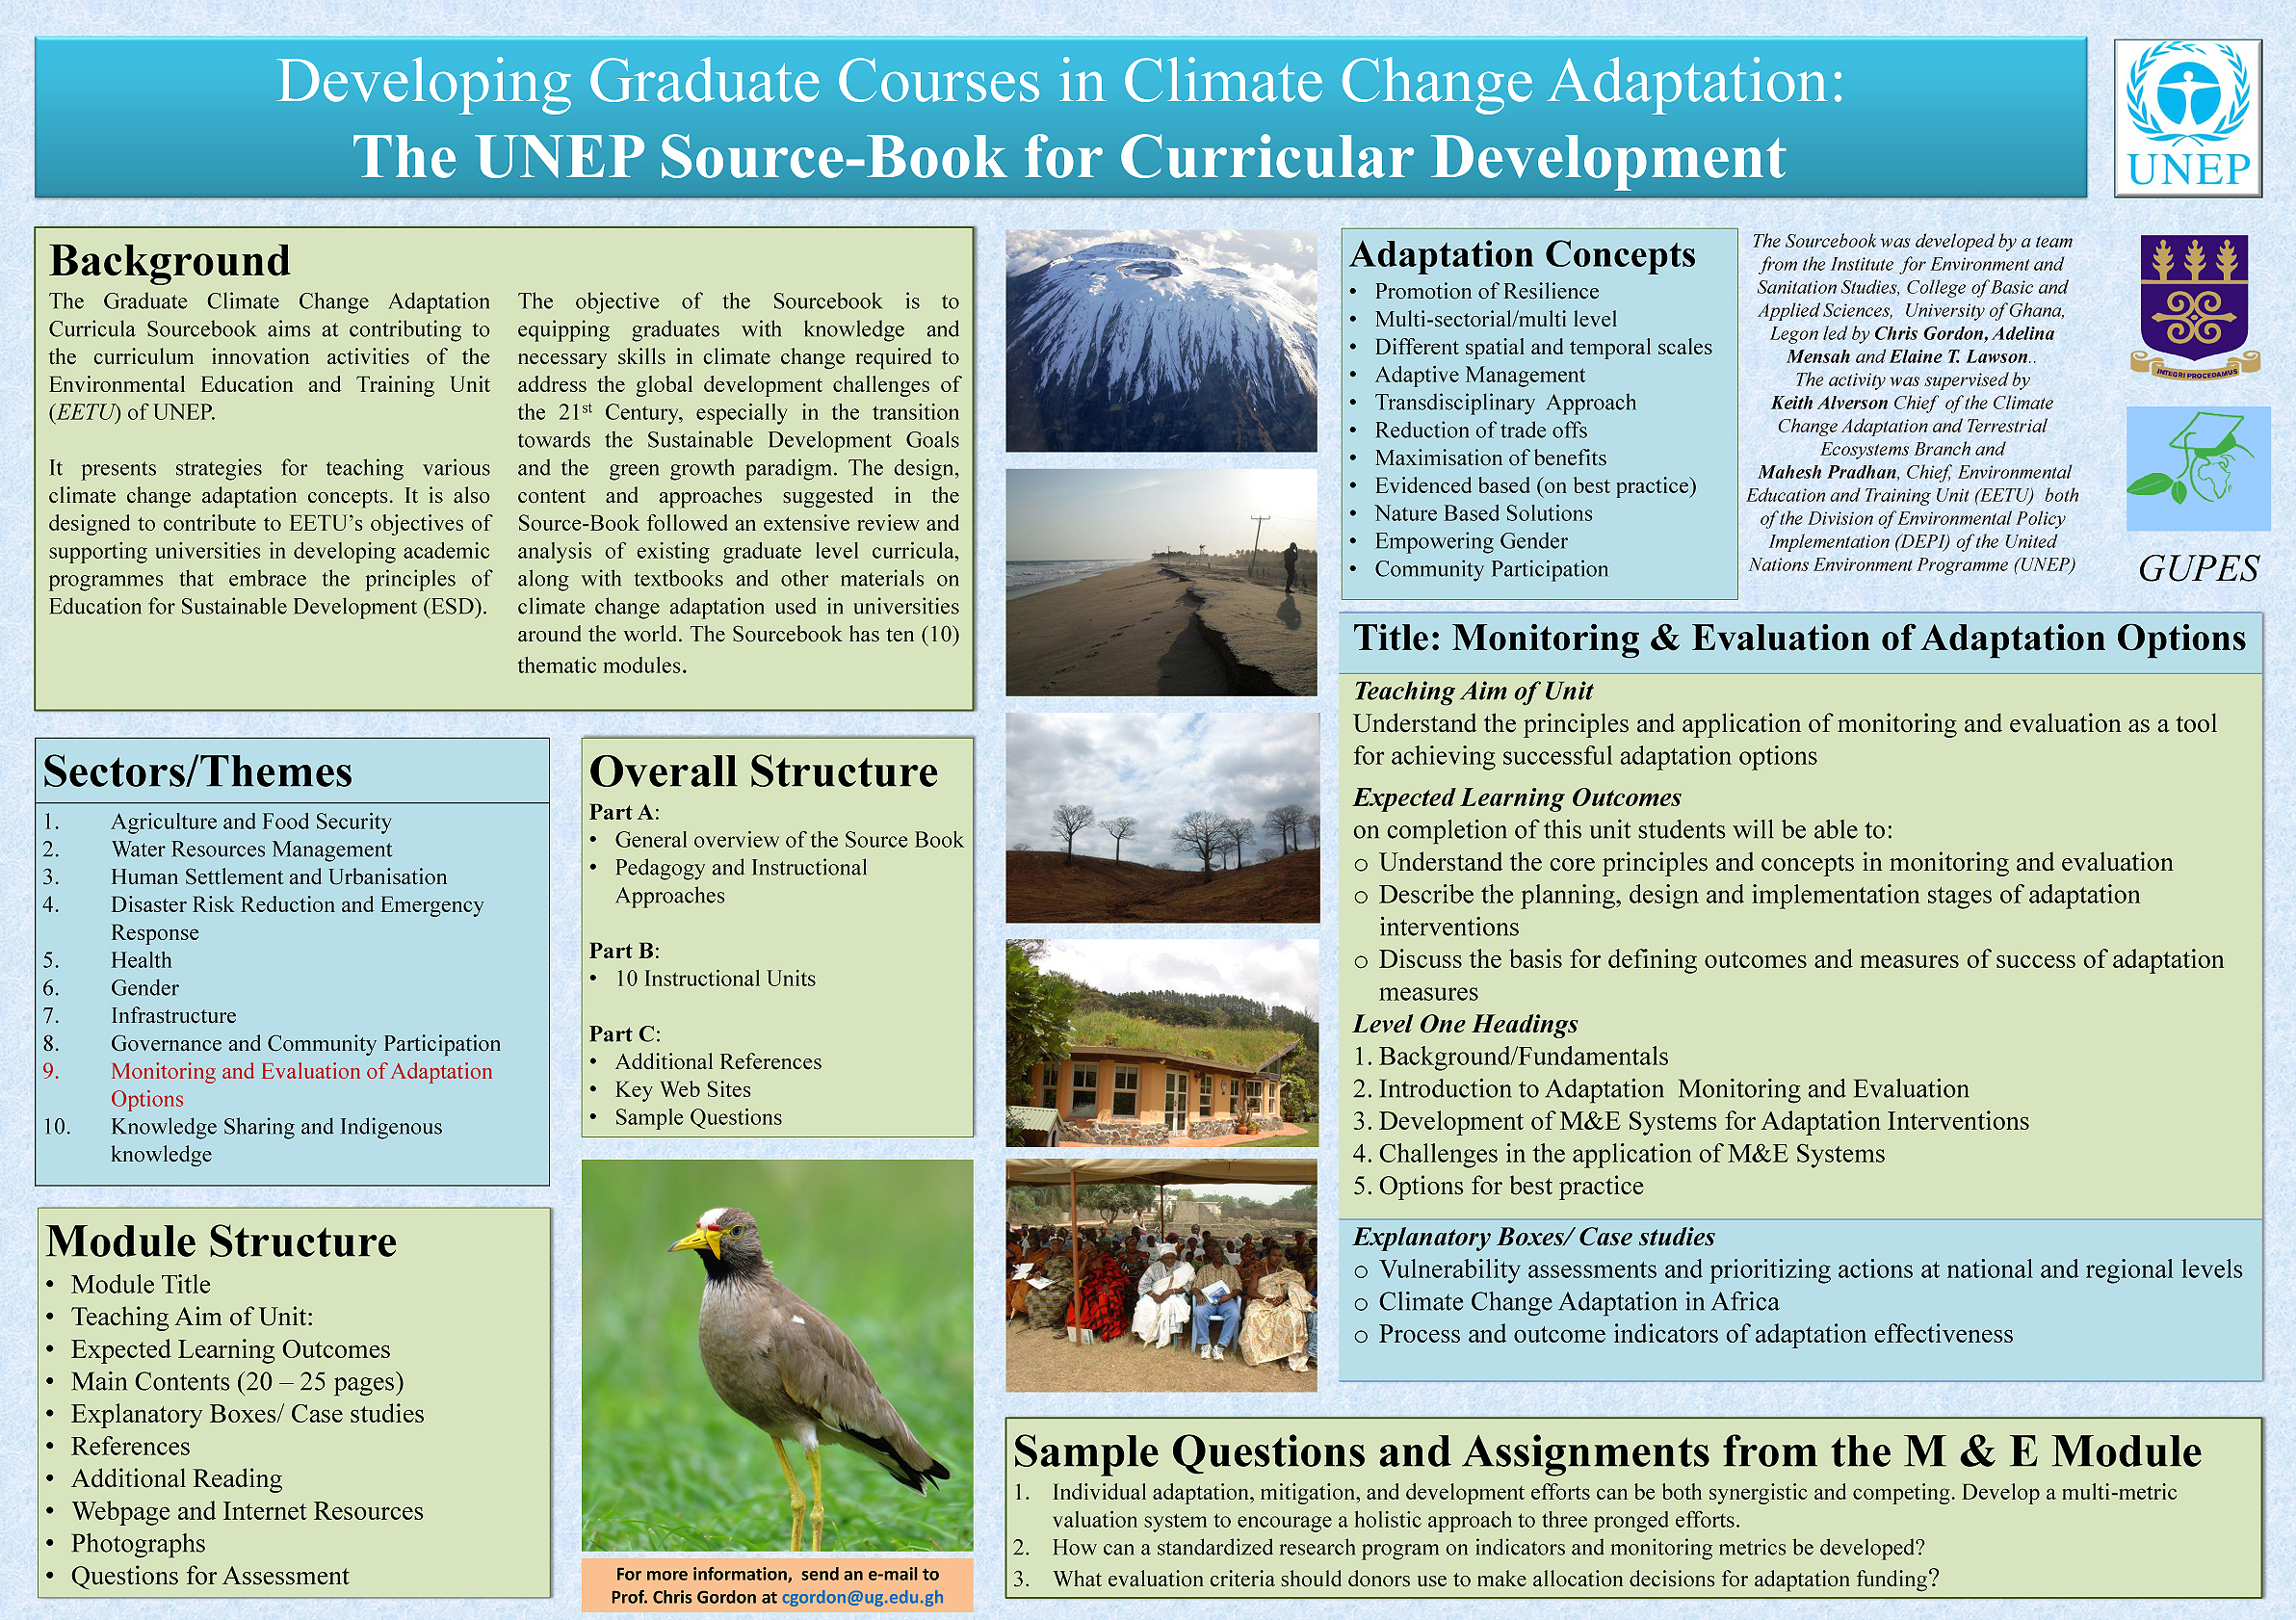 poster by gordon 0 - climate adaptation.